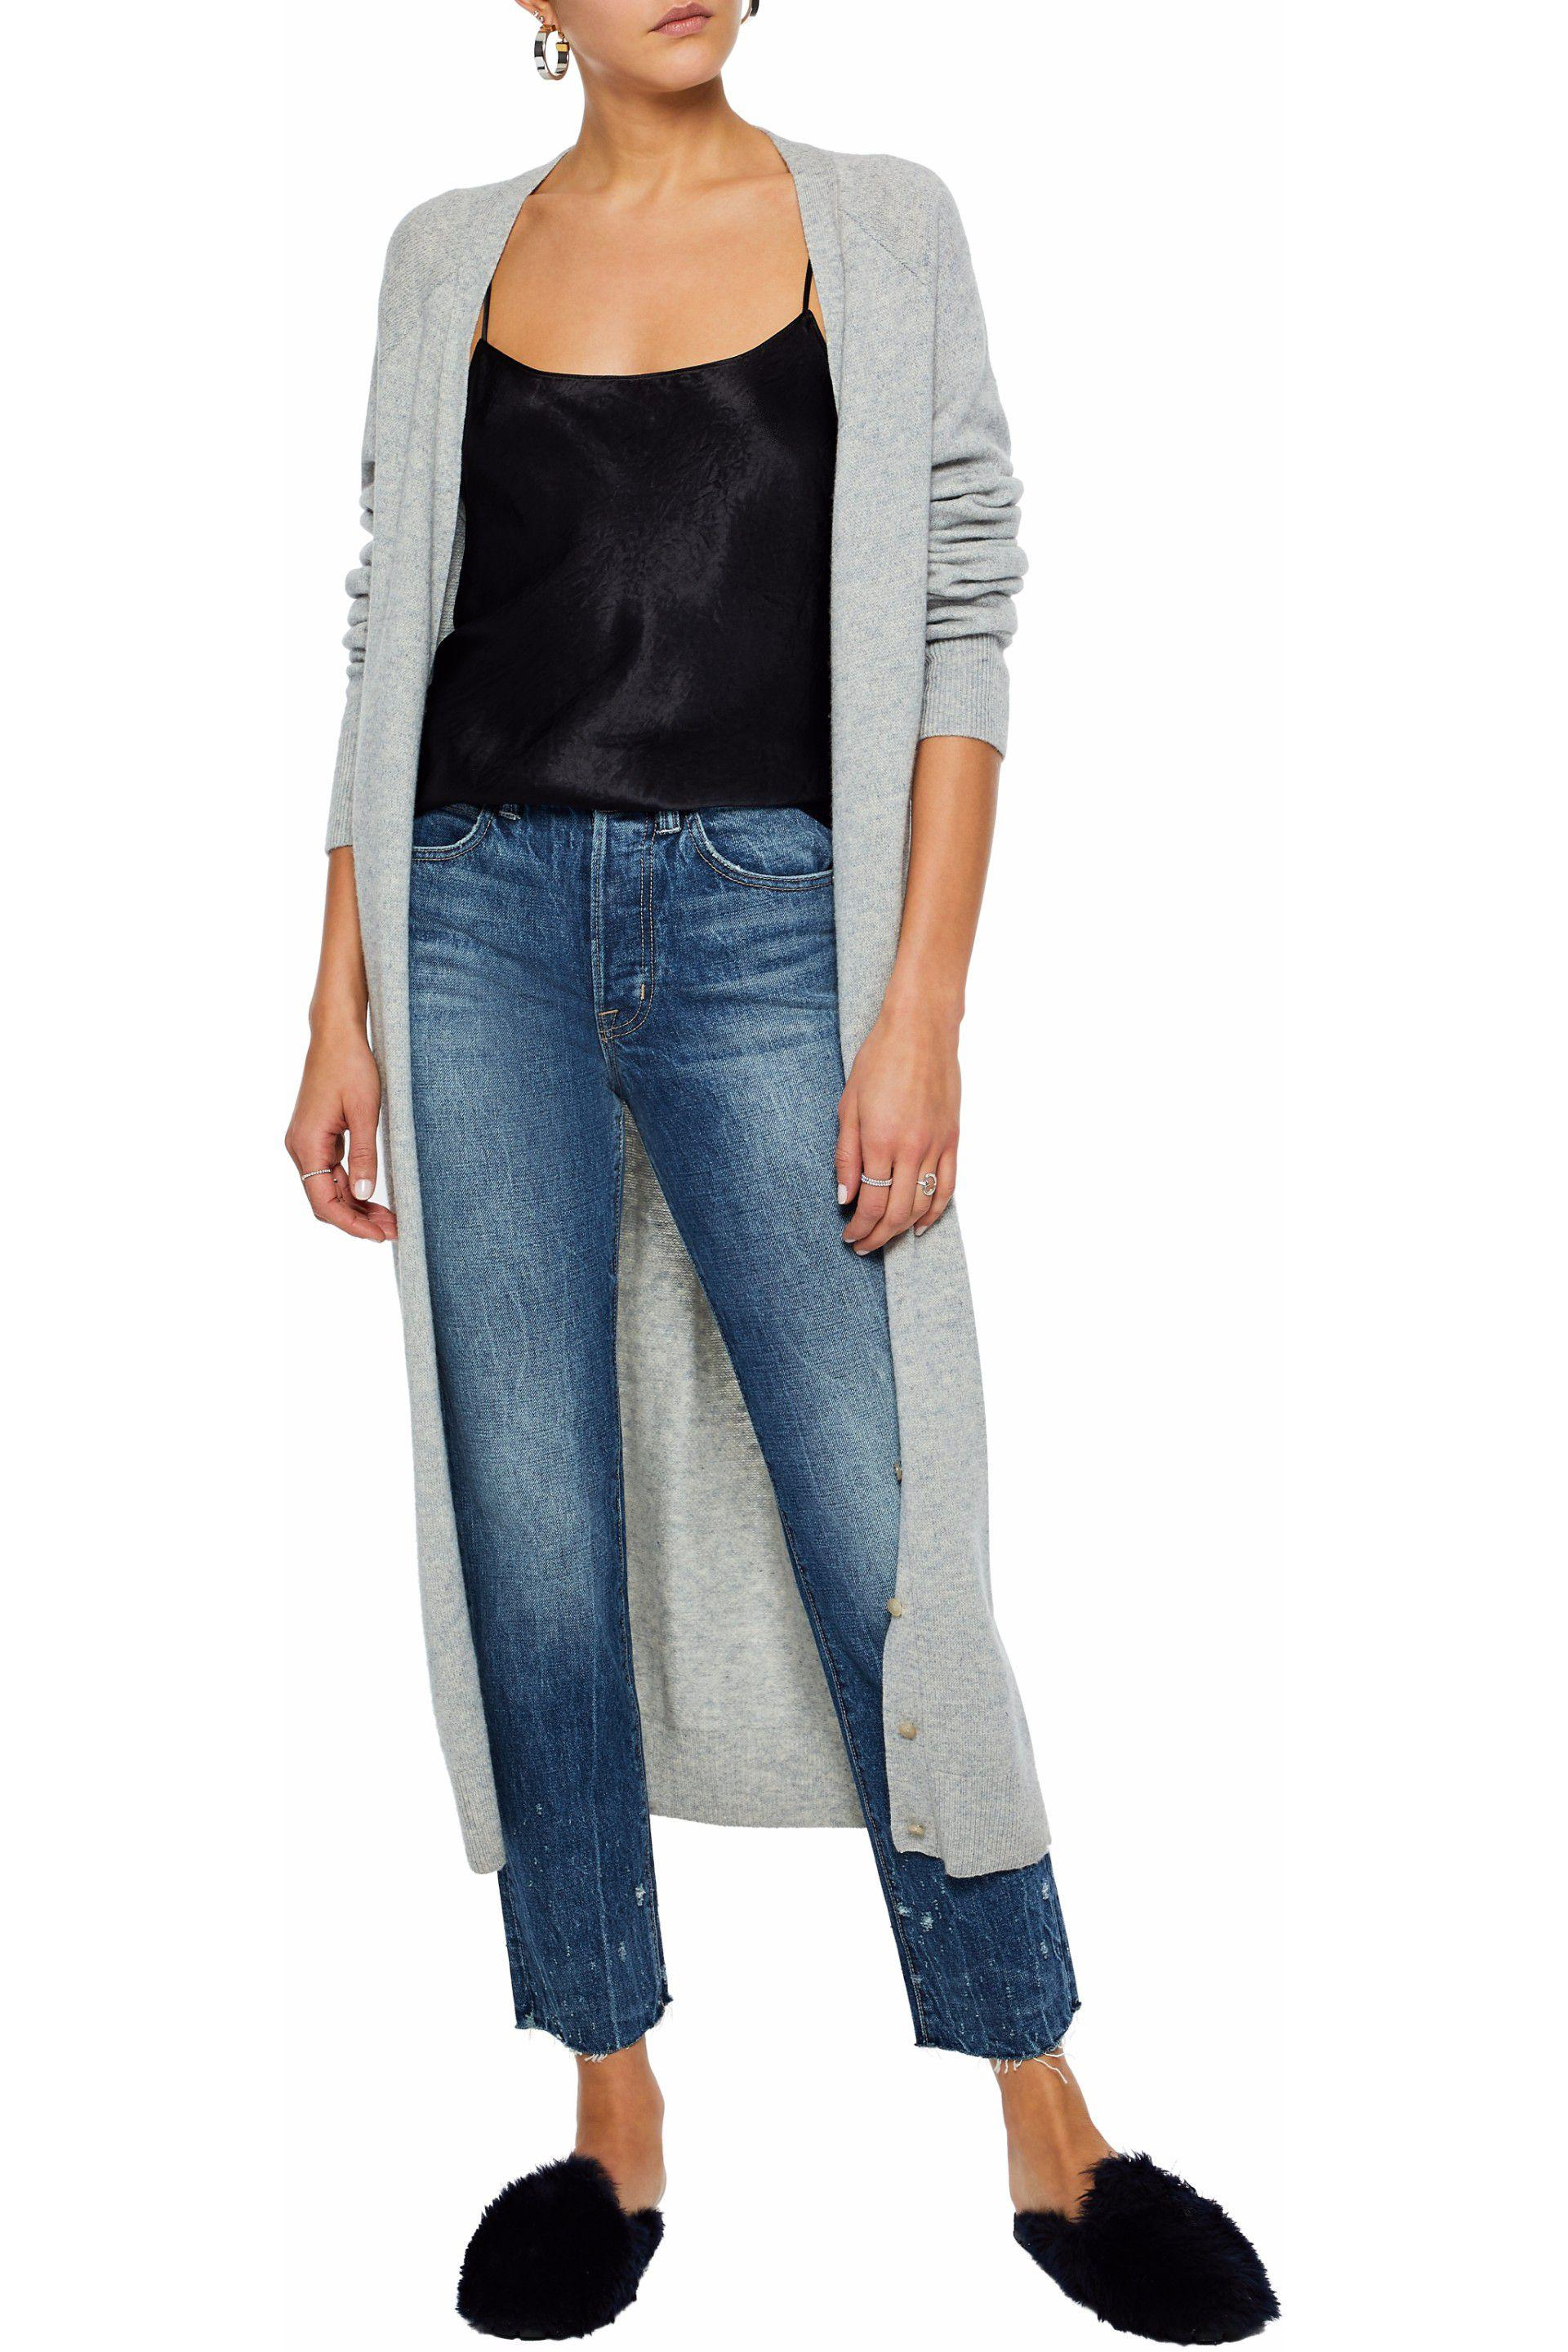 Helmut Lang Cropped Distressed High-rise Slim-leg Jeans Light Denim in Blue